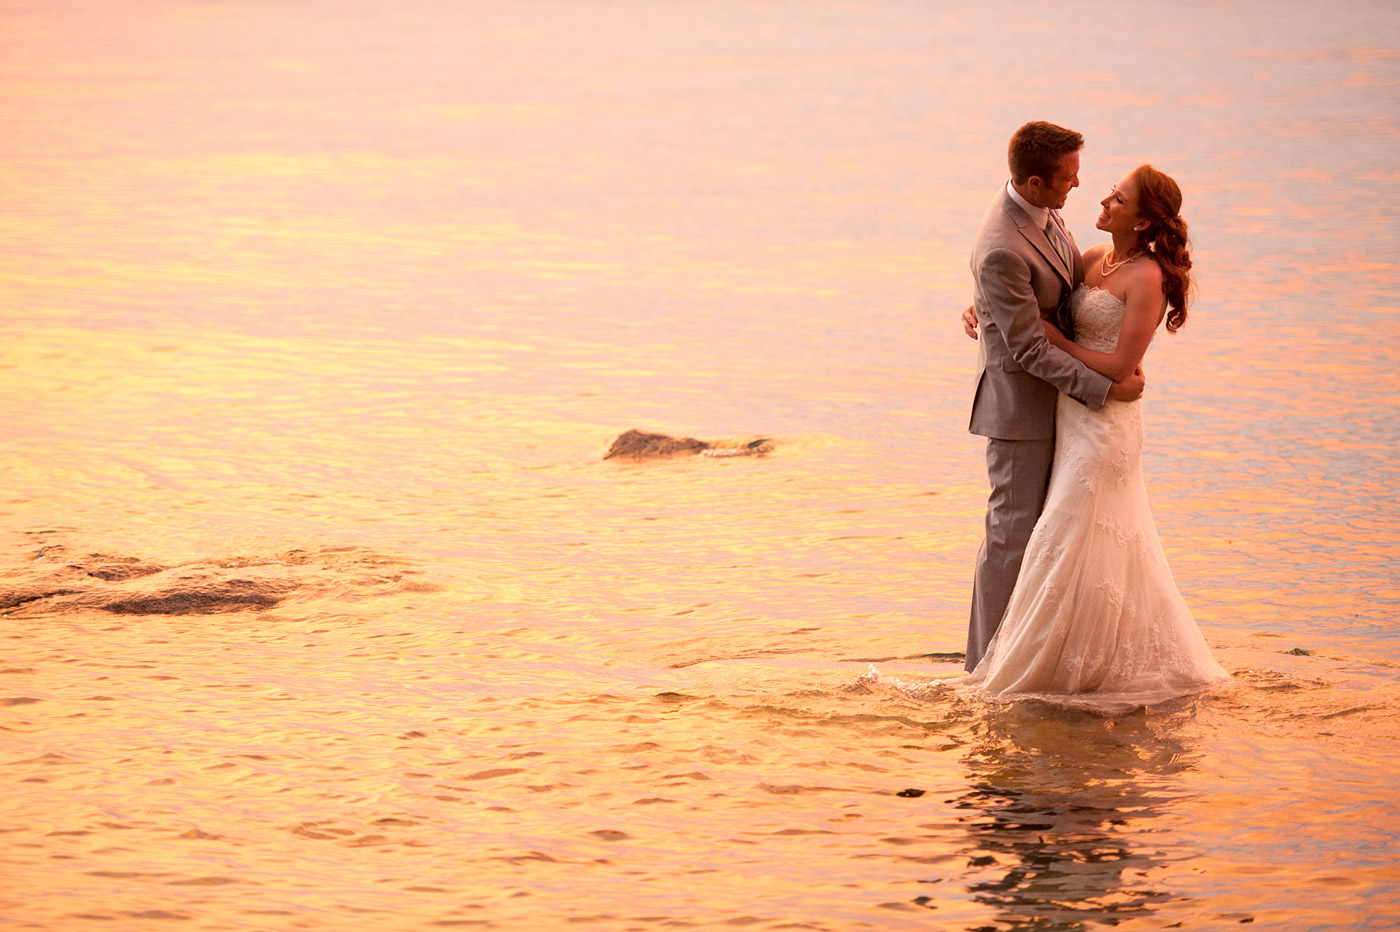 bride and groom embracing in lake at sunset.